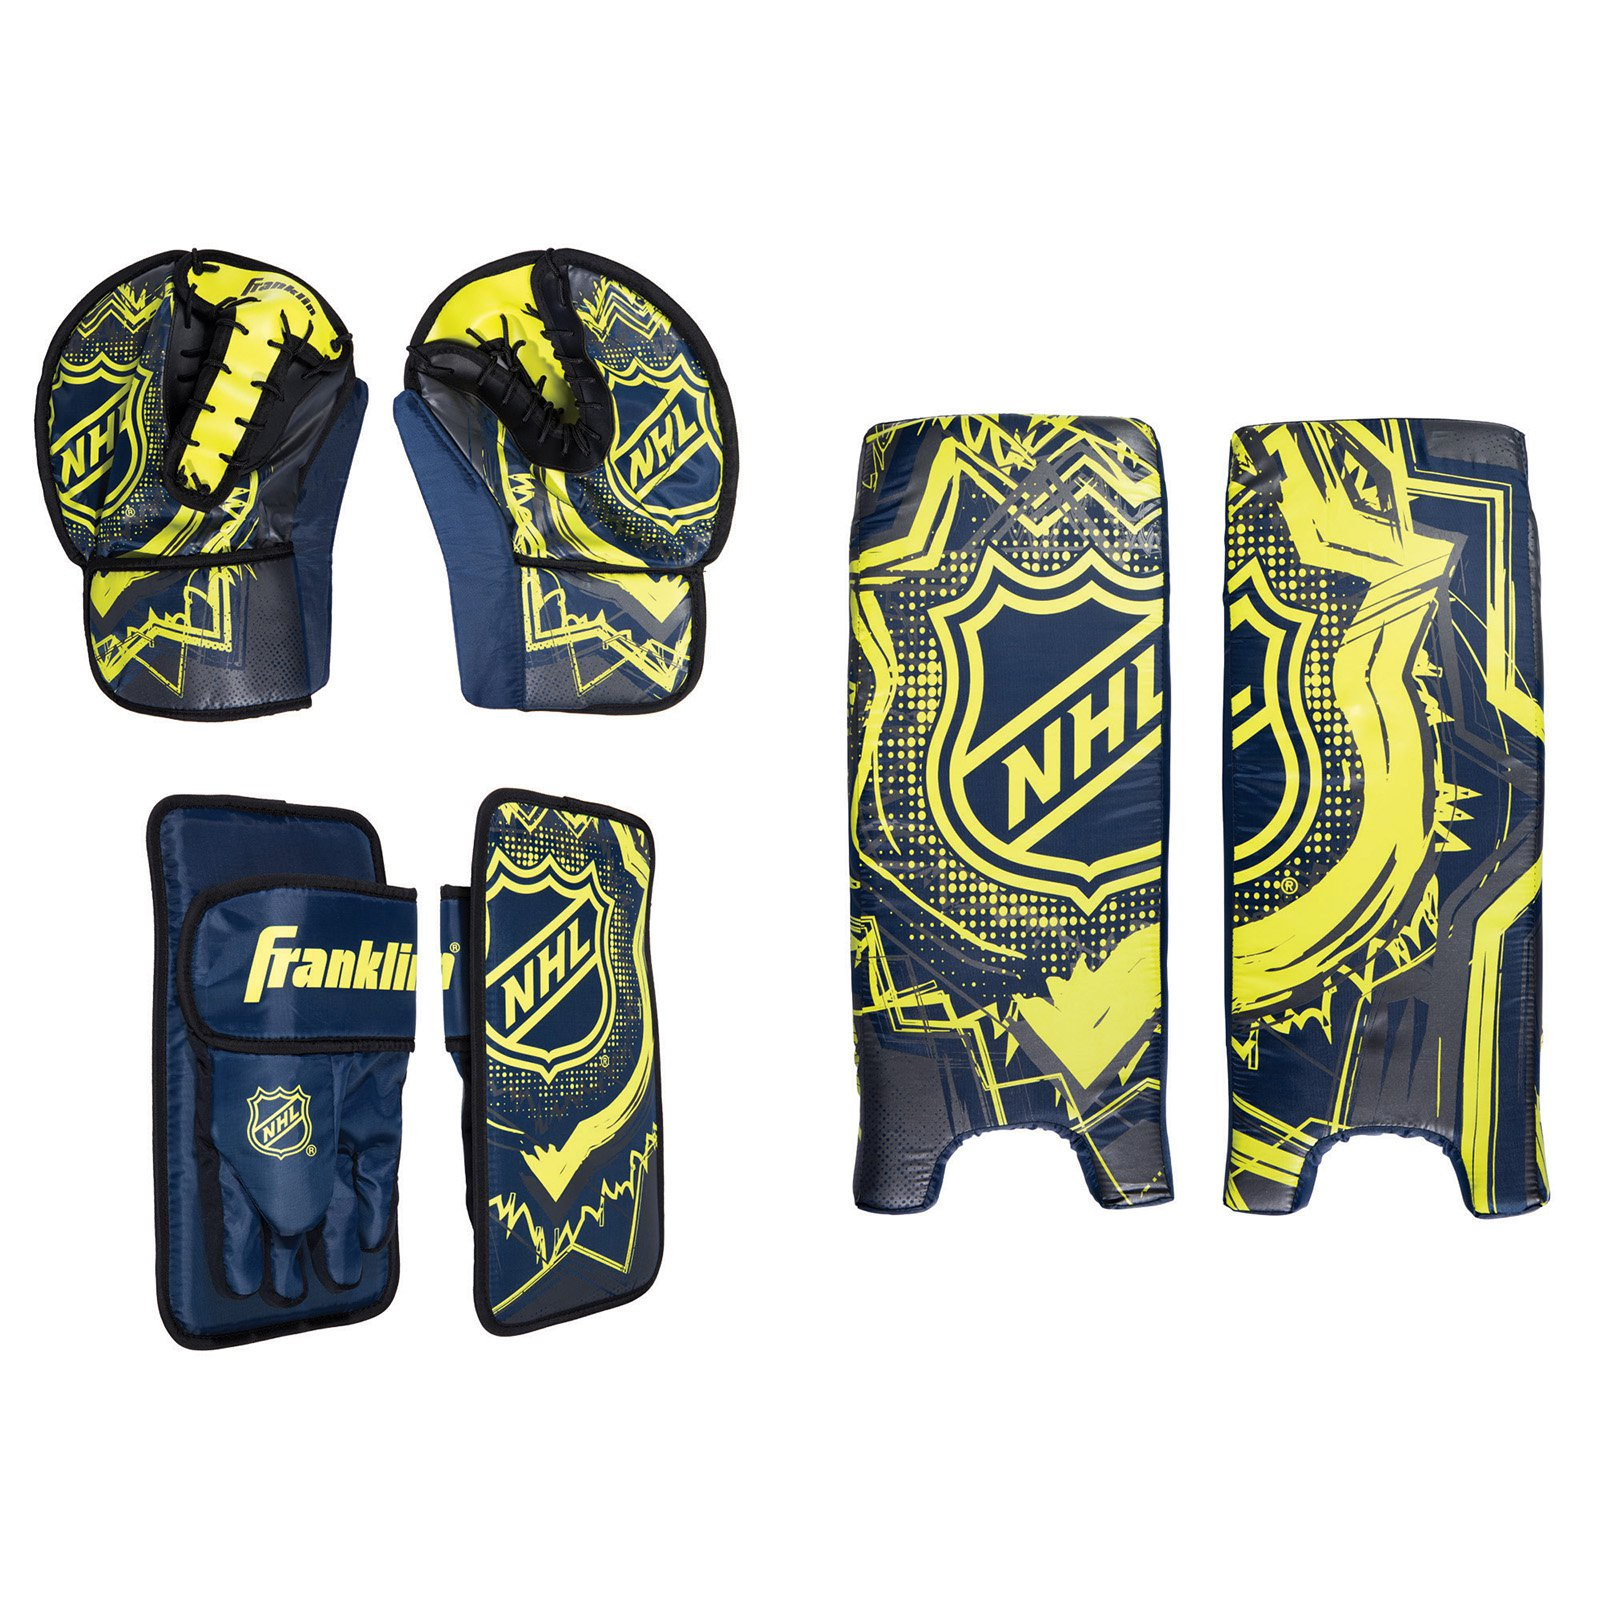 NHL SX Goalie Equipment Set by Franklin Sports Inc